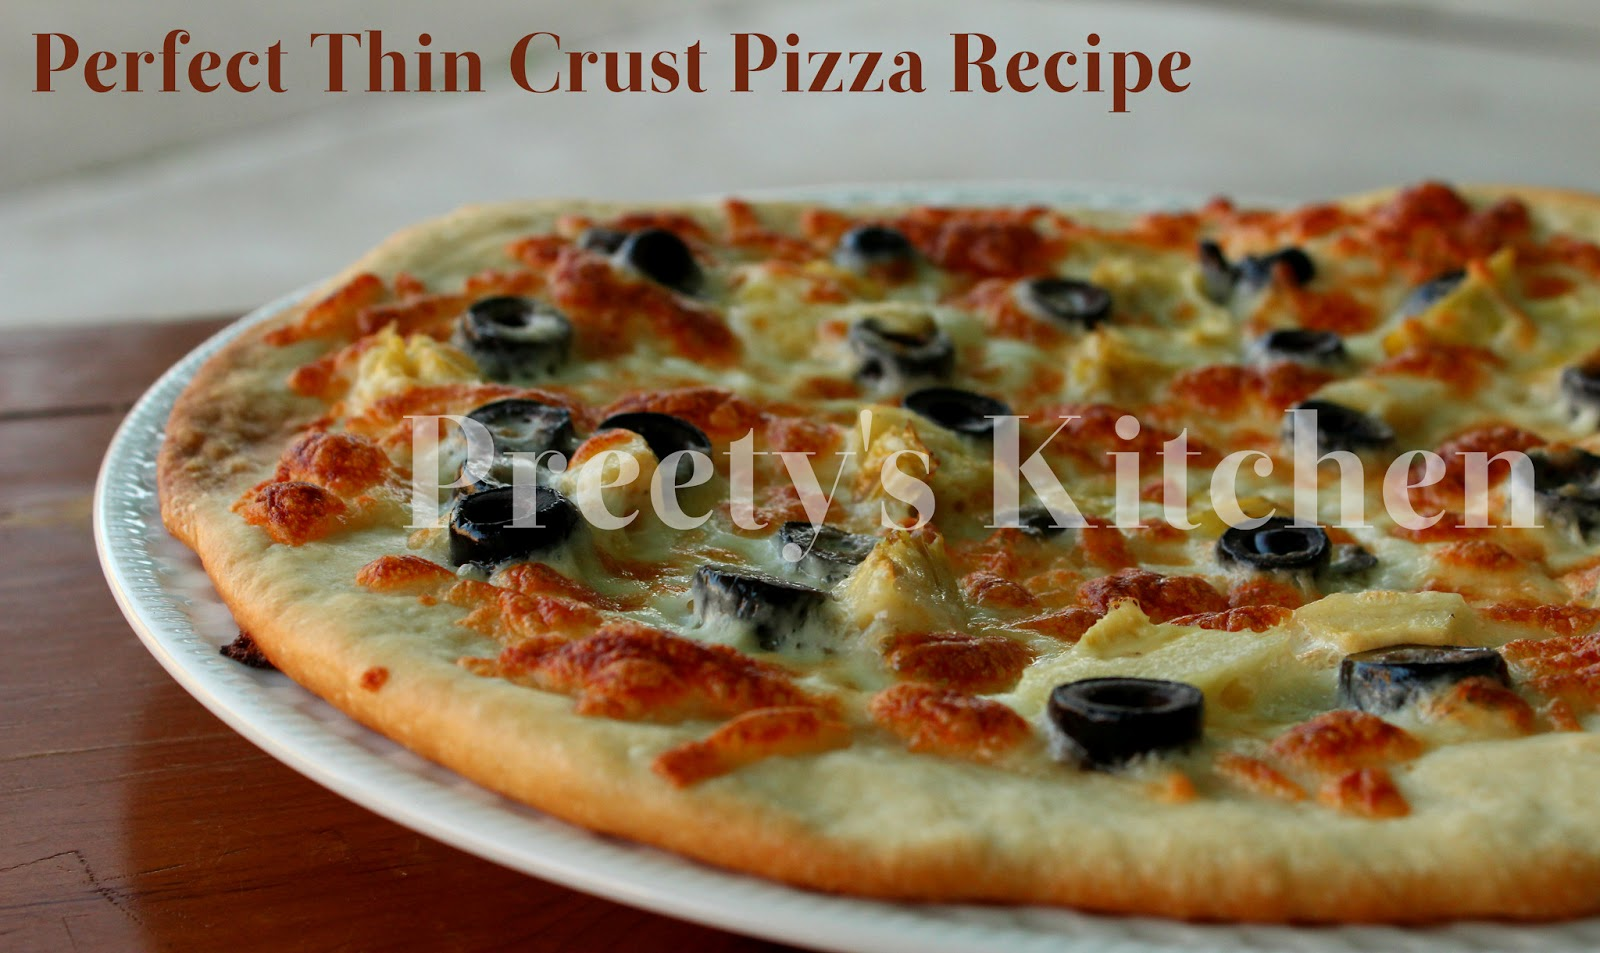 Preety's Kitchen: Perfect Thin Crust Pizza Recipe